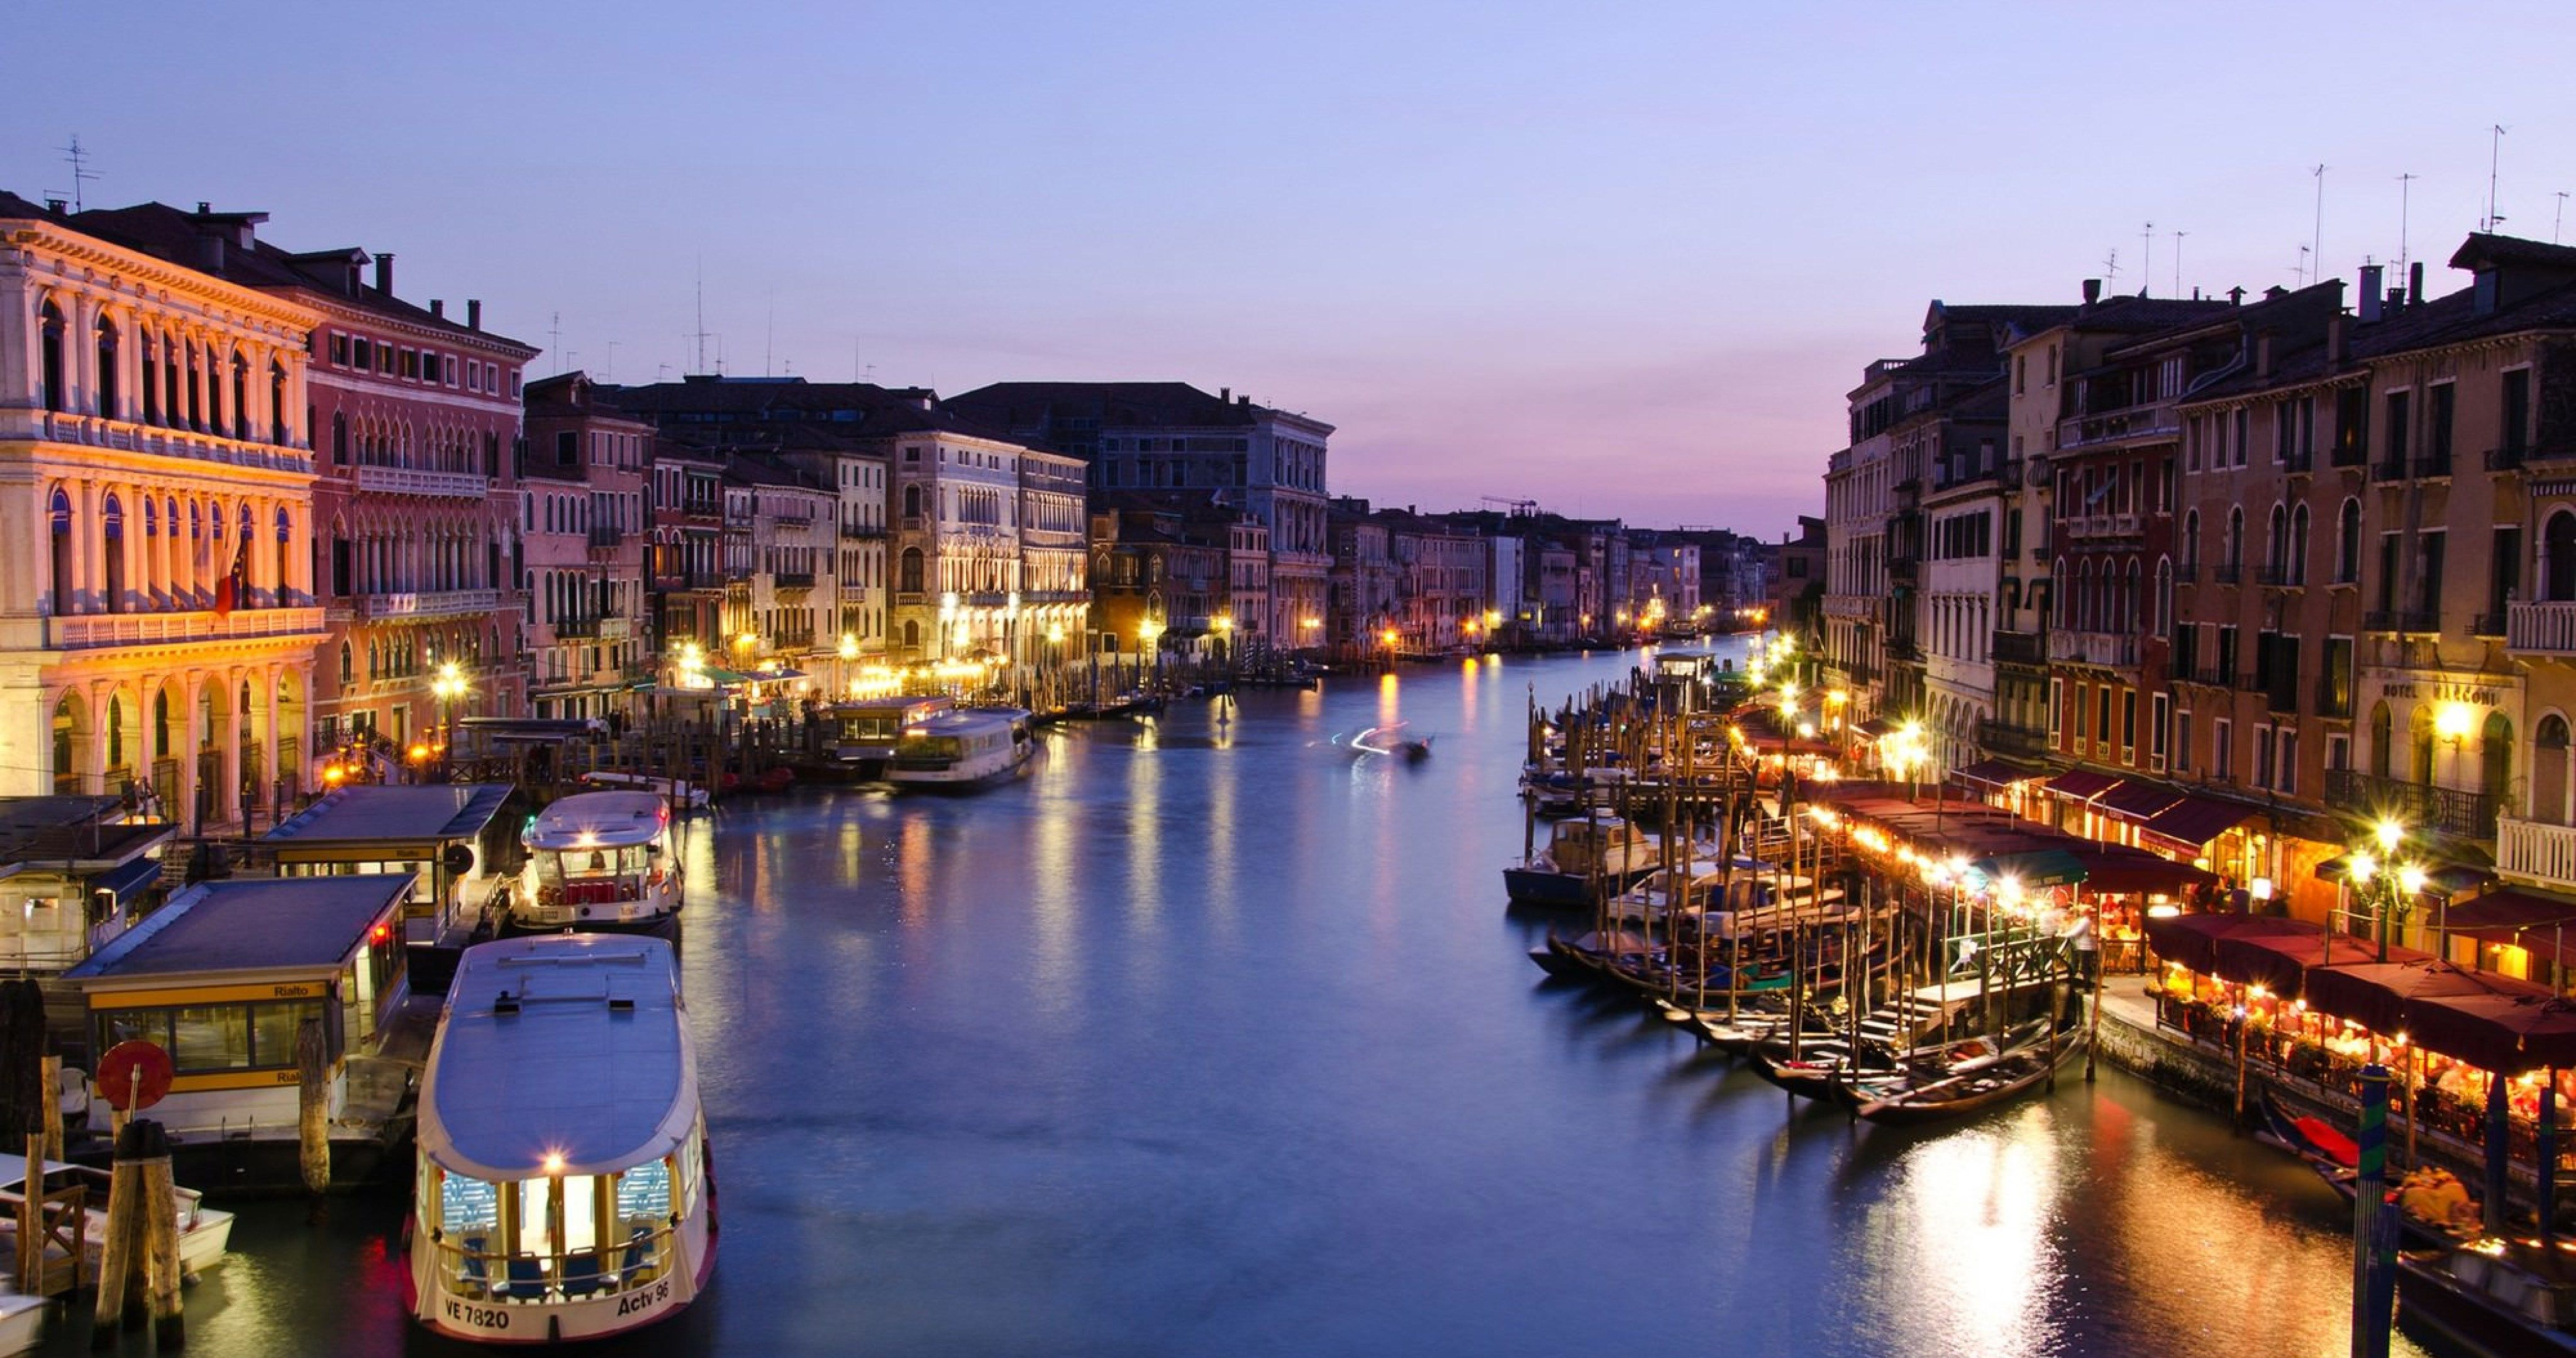 Italy venezia city 4k ultra hd wallpaper sharovarka pinterest italy venezia city hd wallpapers best high quality photo gallery and latest background them on all your devices laptopsmartphone and tablet voltagebd Choice Image